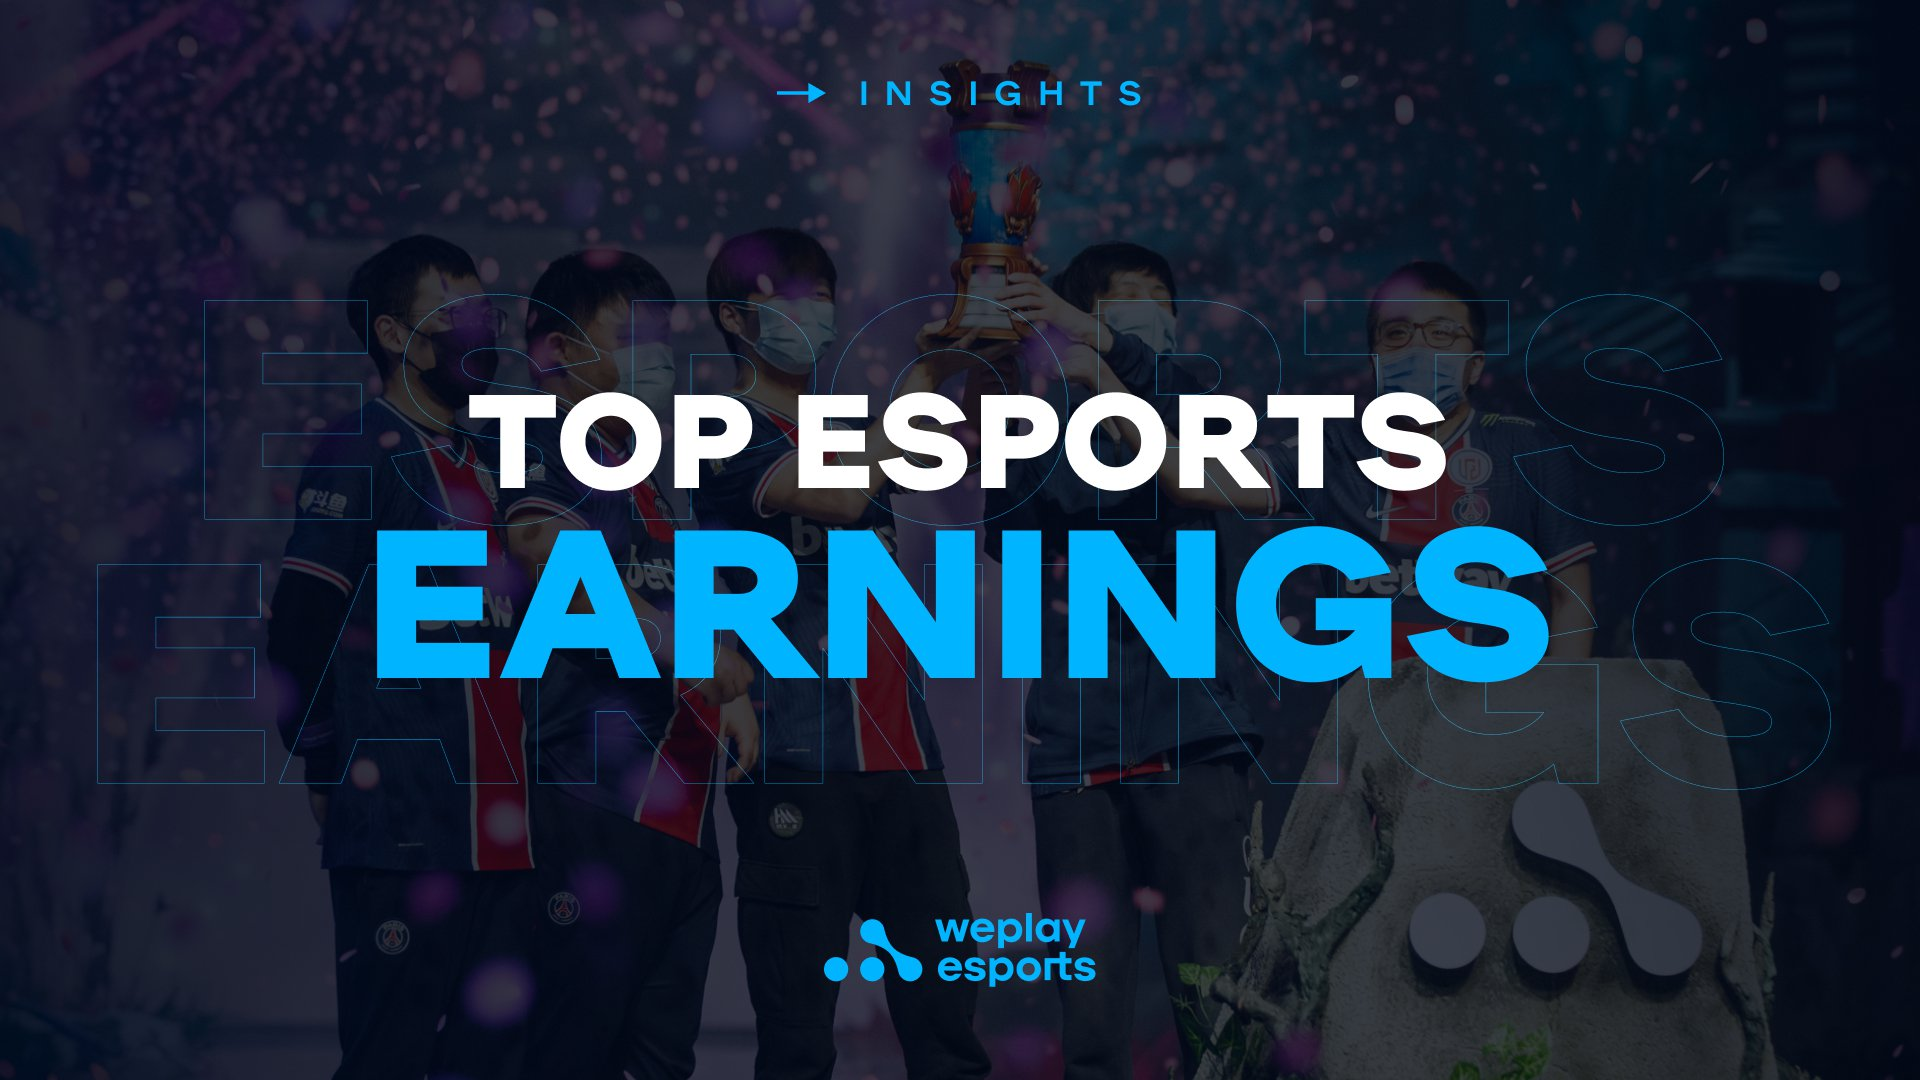 Top Esports Earnings. Image: WePlay Holding